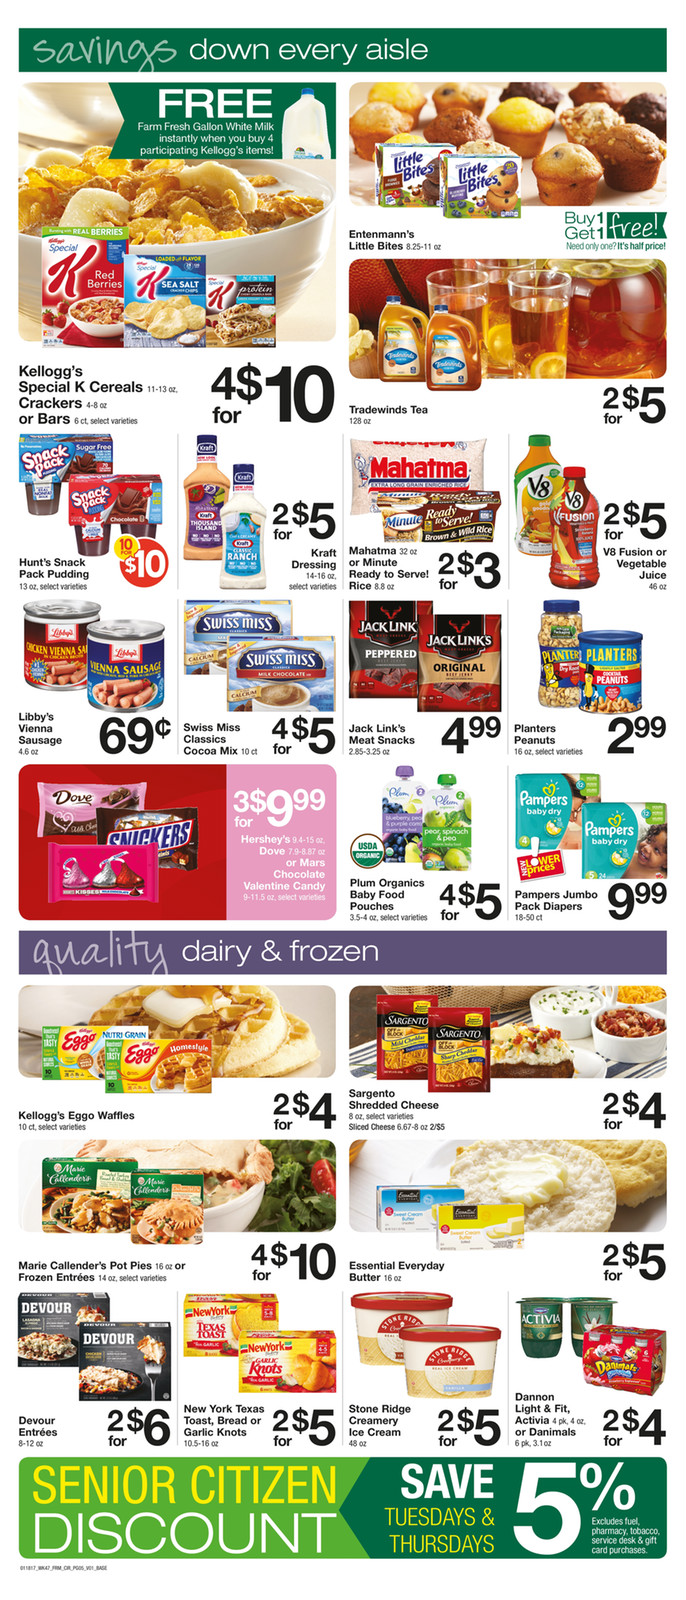 Find all deals, offers and prices in the latest Farm Fresh Weekly Ad Specials. Promotions, discounts, rebates, coupons, specials, and the best sales for this week are available in .